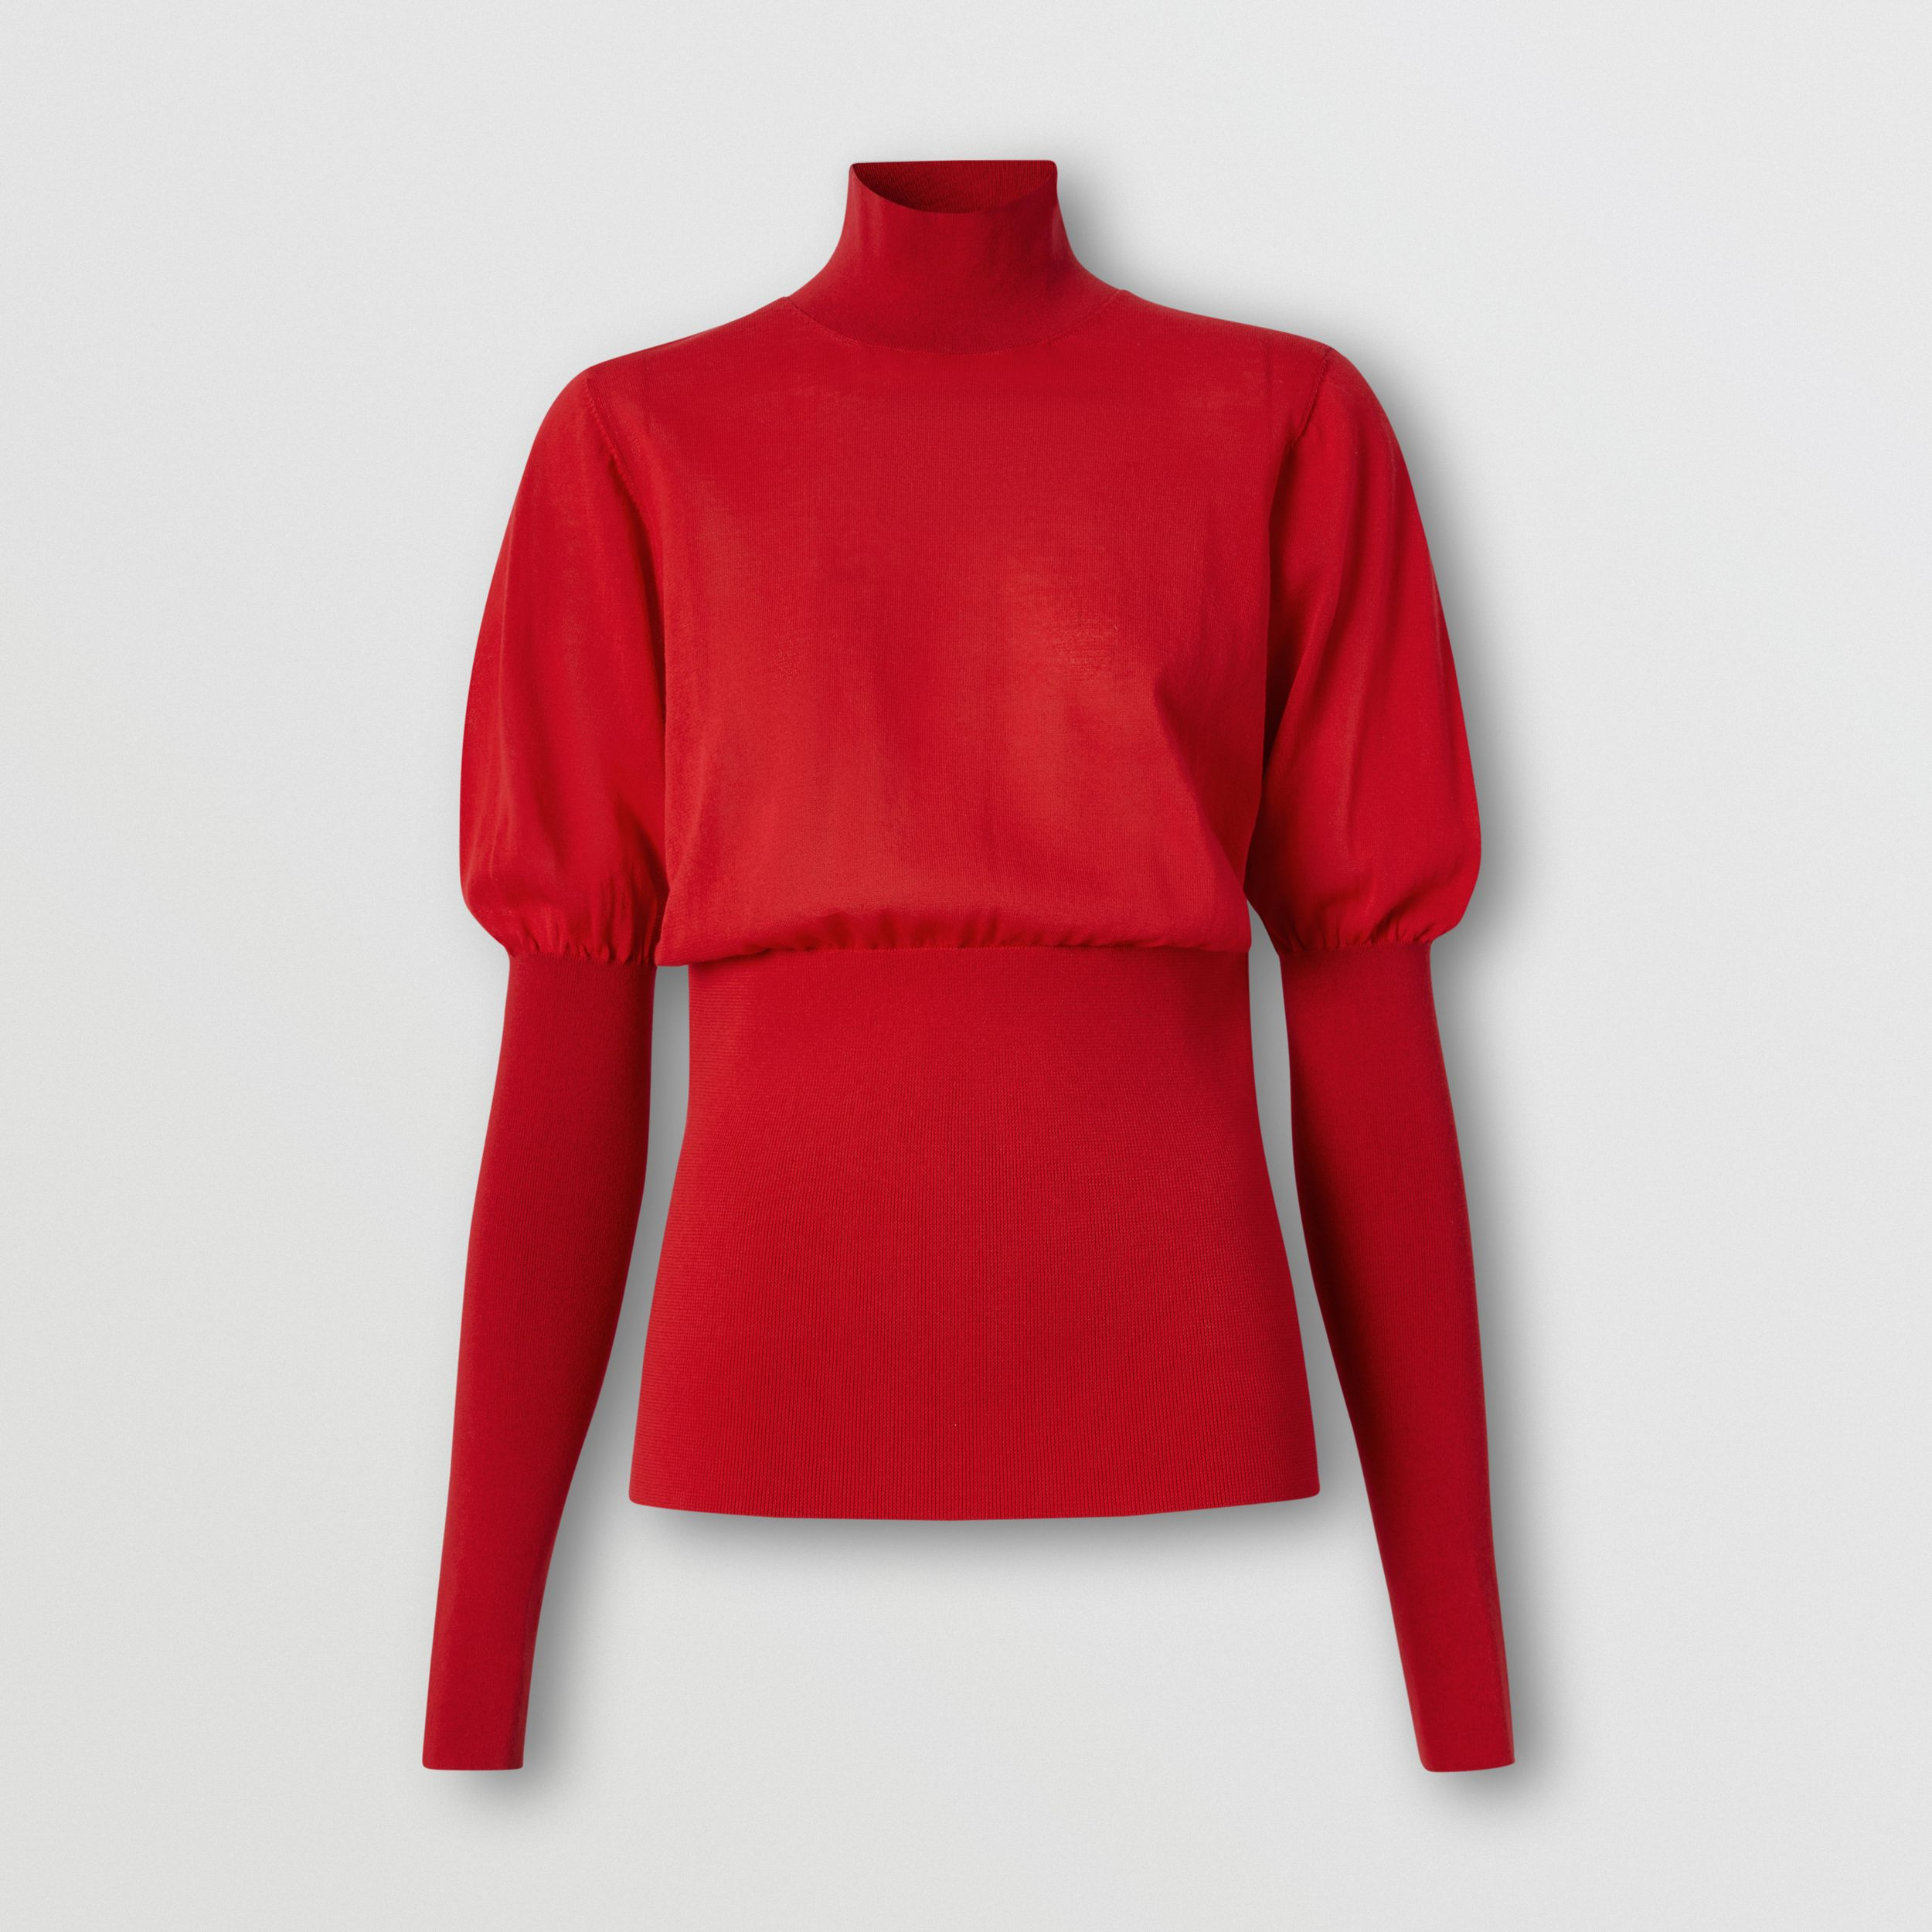 Puff-sleeve Knit Cotton Blend Turtleneck Sweater in Bright Red - Women | Burberry - 4